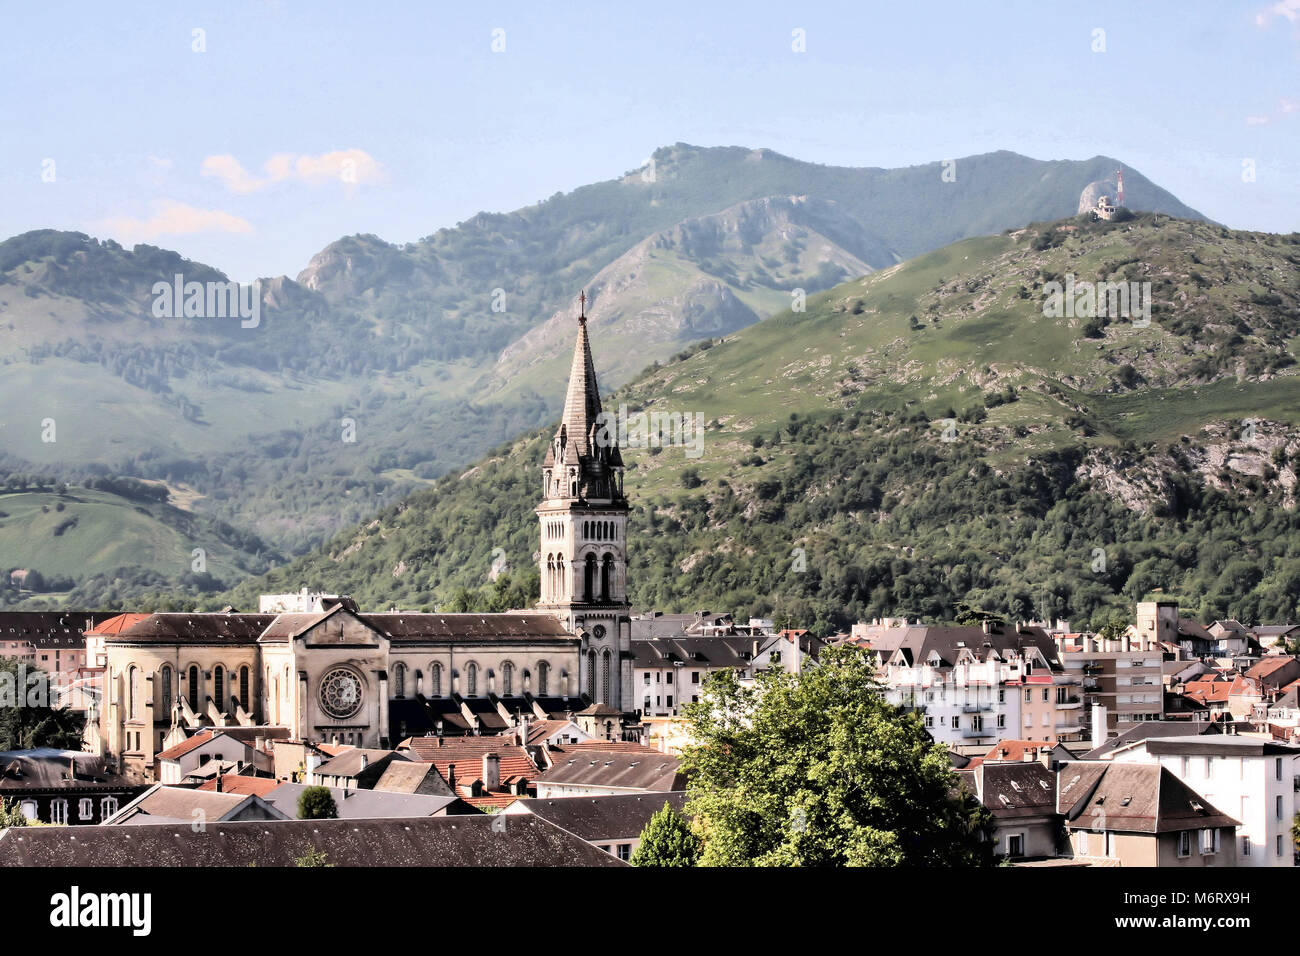 The Catholic Church in Lourdes - Stock Image